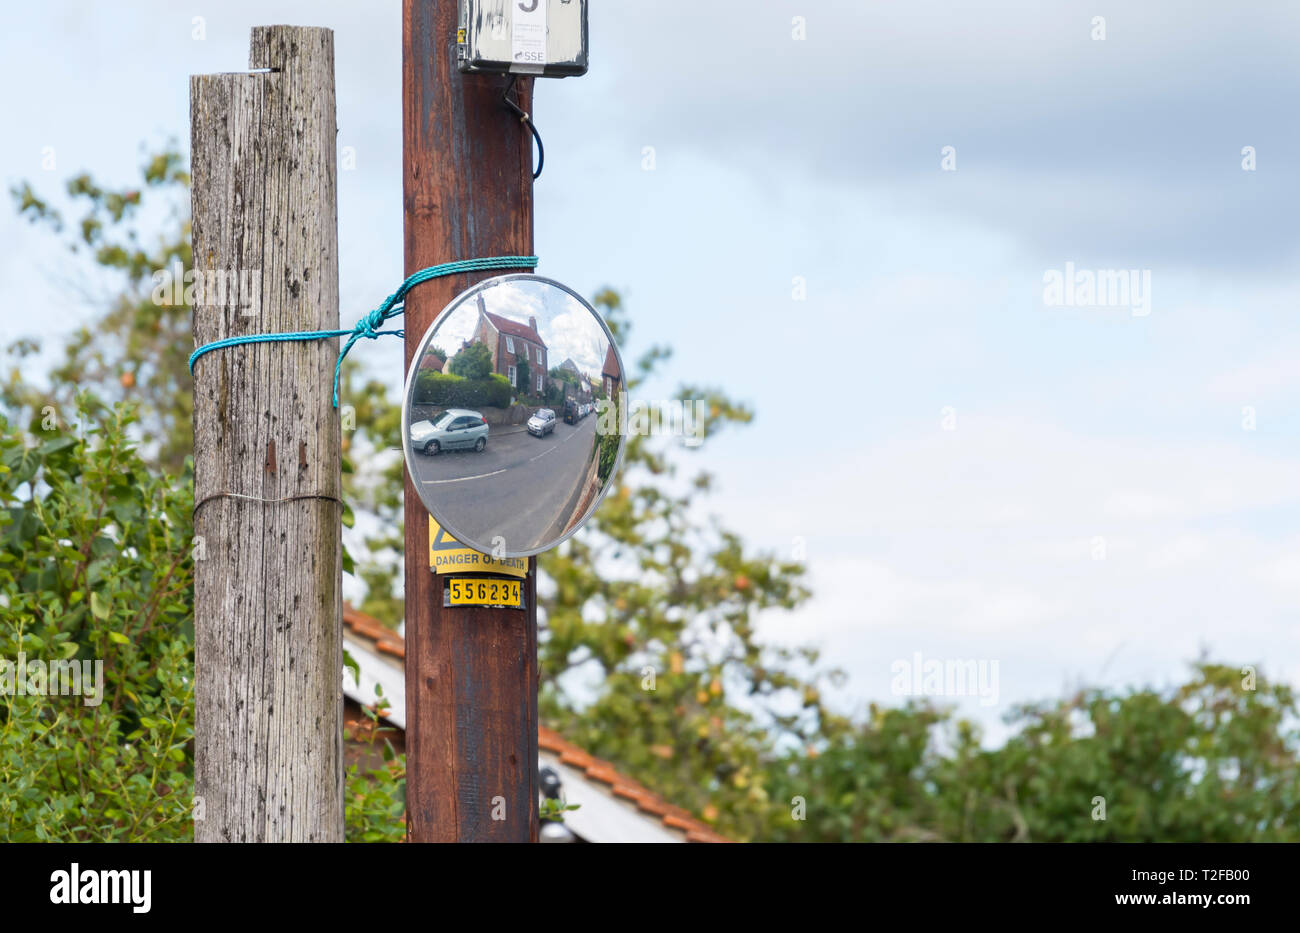 Convex mirror on a pole on a road in the UK to aid visibility at a blind junction. - Stock Image